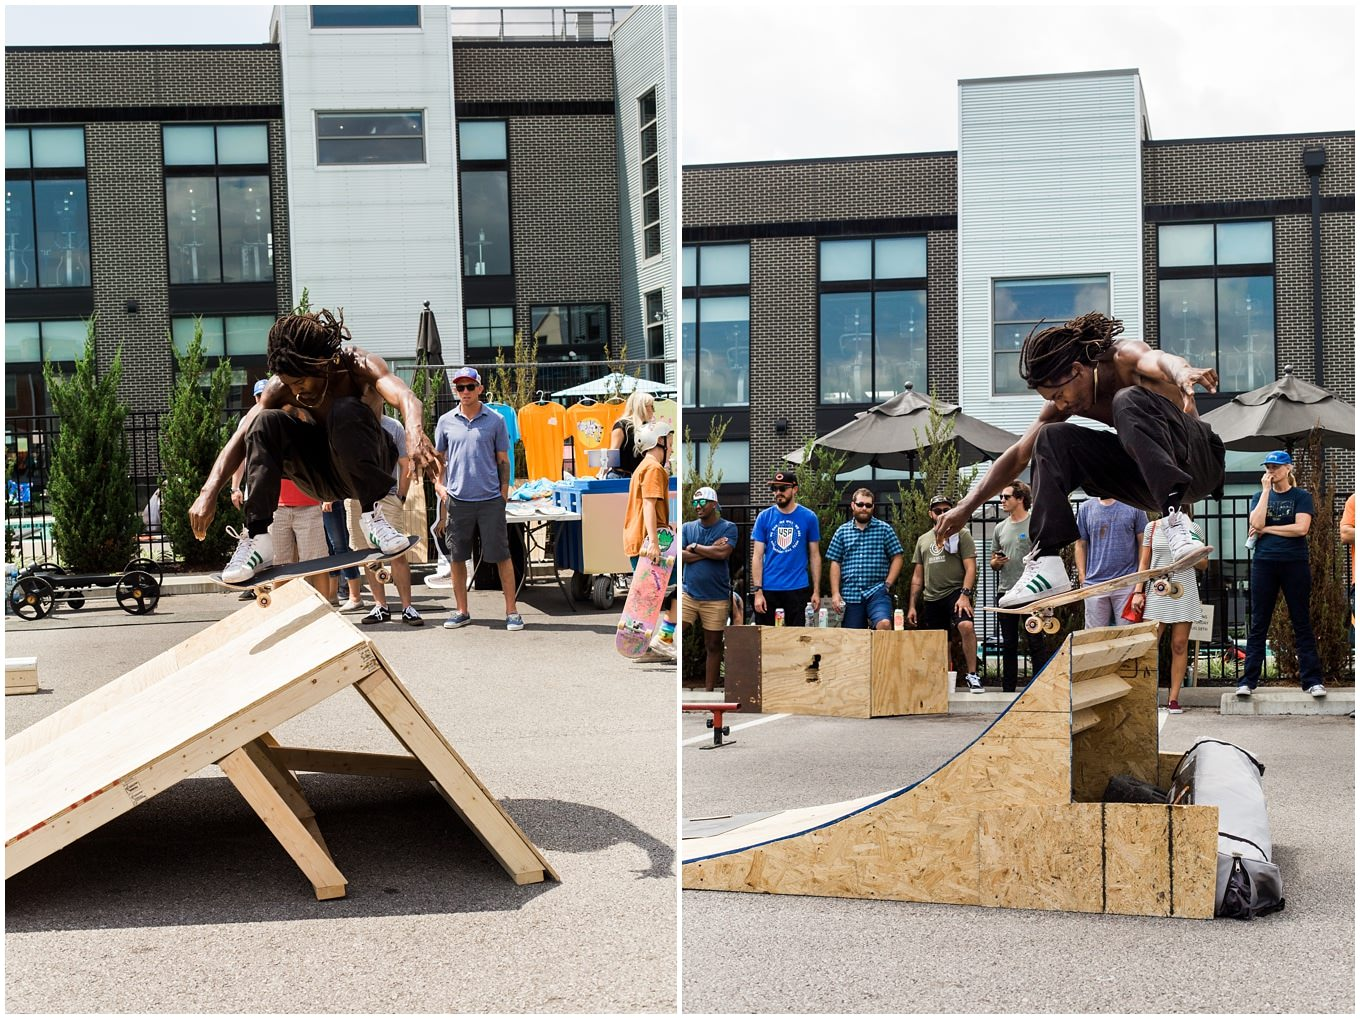 adam lowe photography , hoof hearted, columbus, ohio, skateboarding, skate, 80s, jam